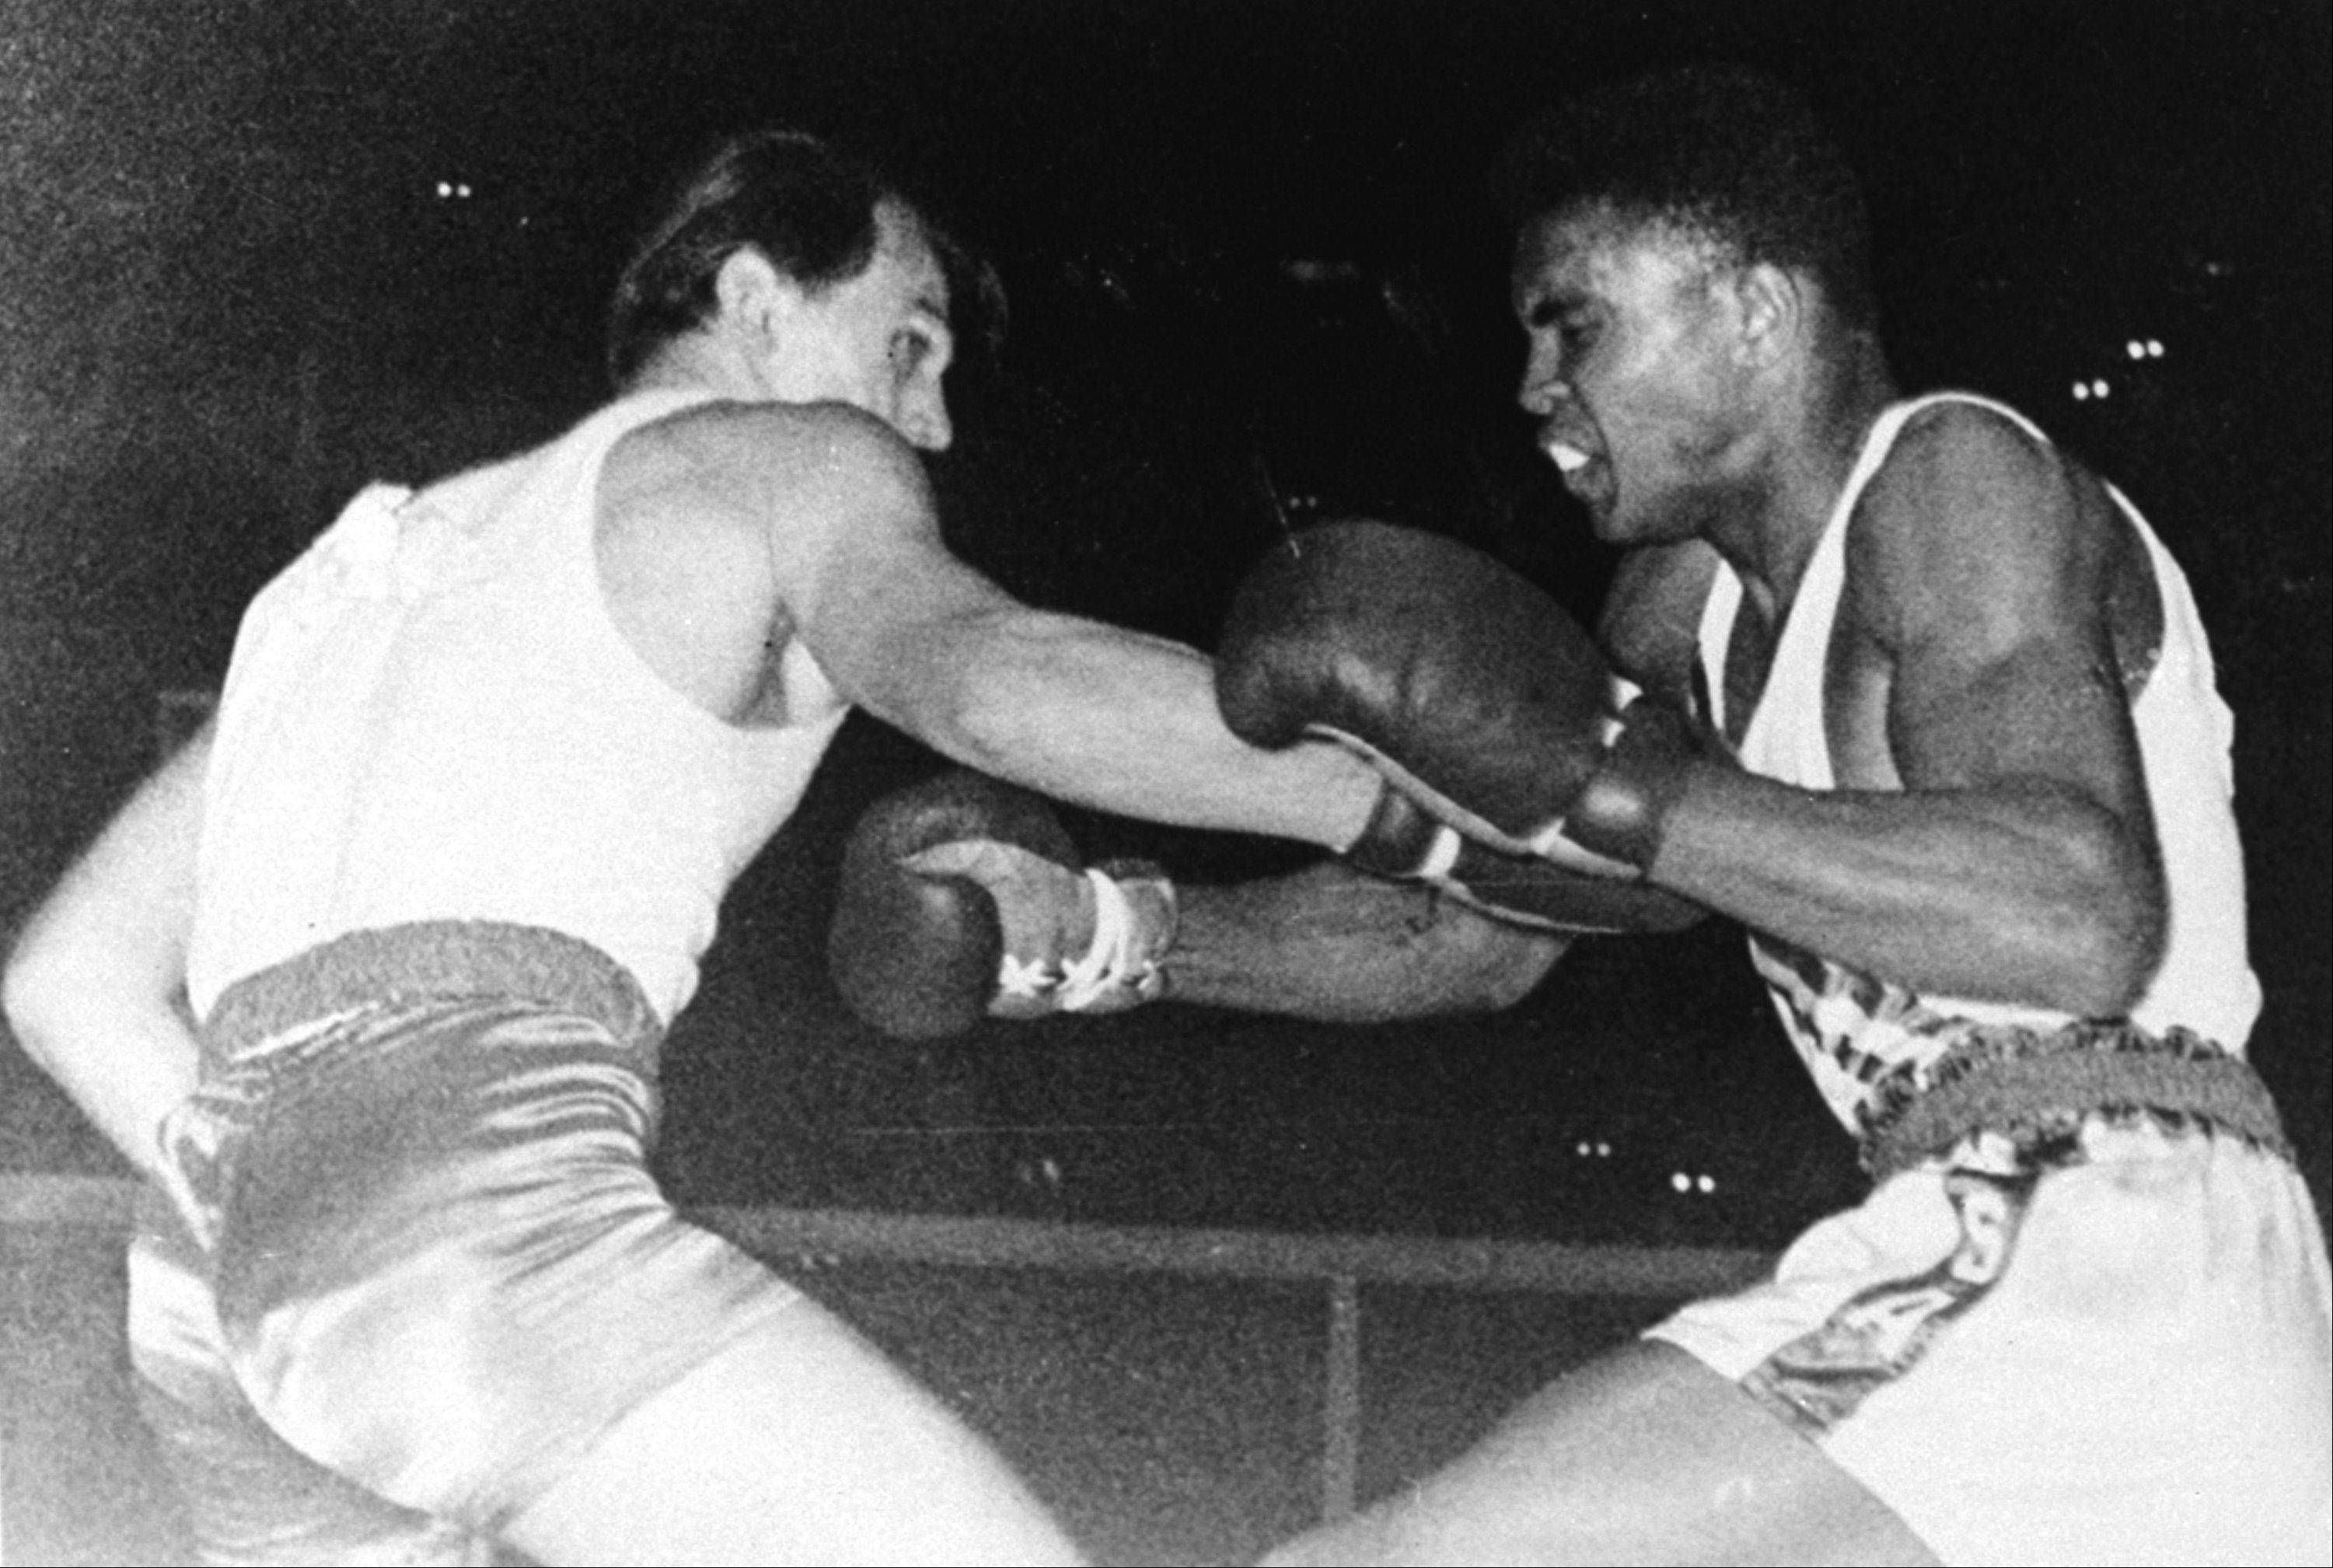 United States Olympic boxer Cassius Clay (Mohammed Ali) of Louisville, KY, right, is shown in action during the Olympic bout against Z. Pietrzykowski of Poland in Rome, Italy, September 5, 1960. Clay outpointed the Pole and won the gold medal in the light heavyweight class for the United States.